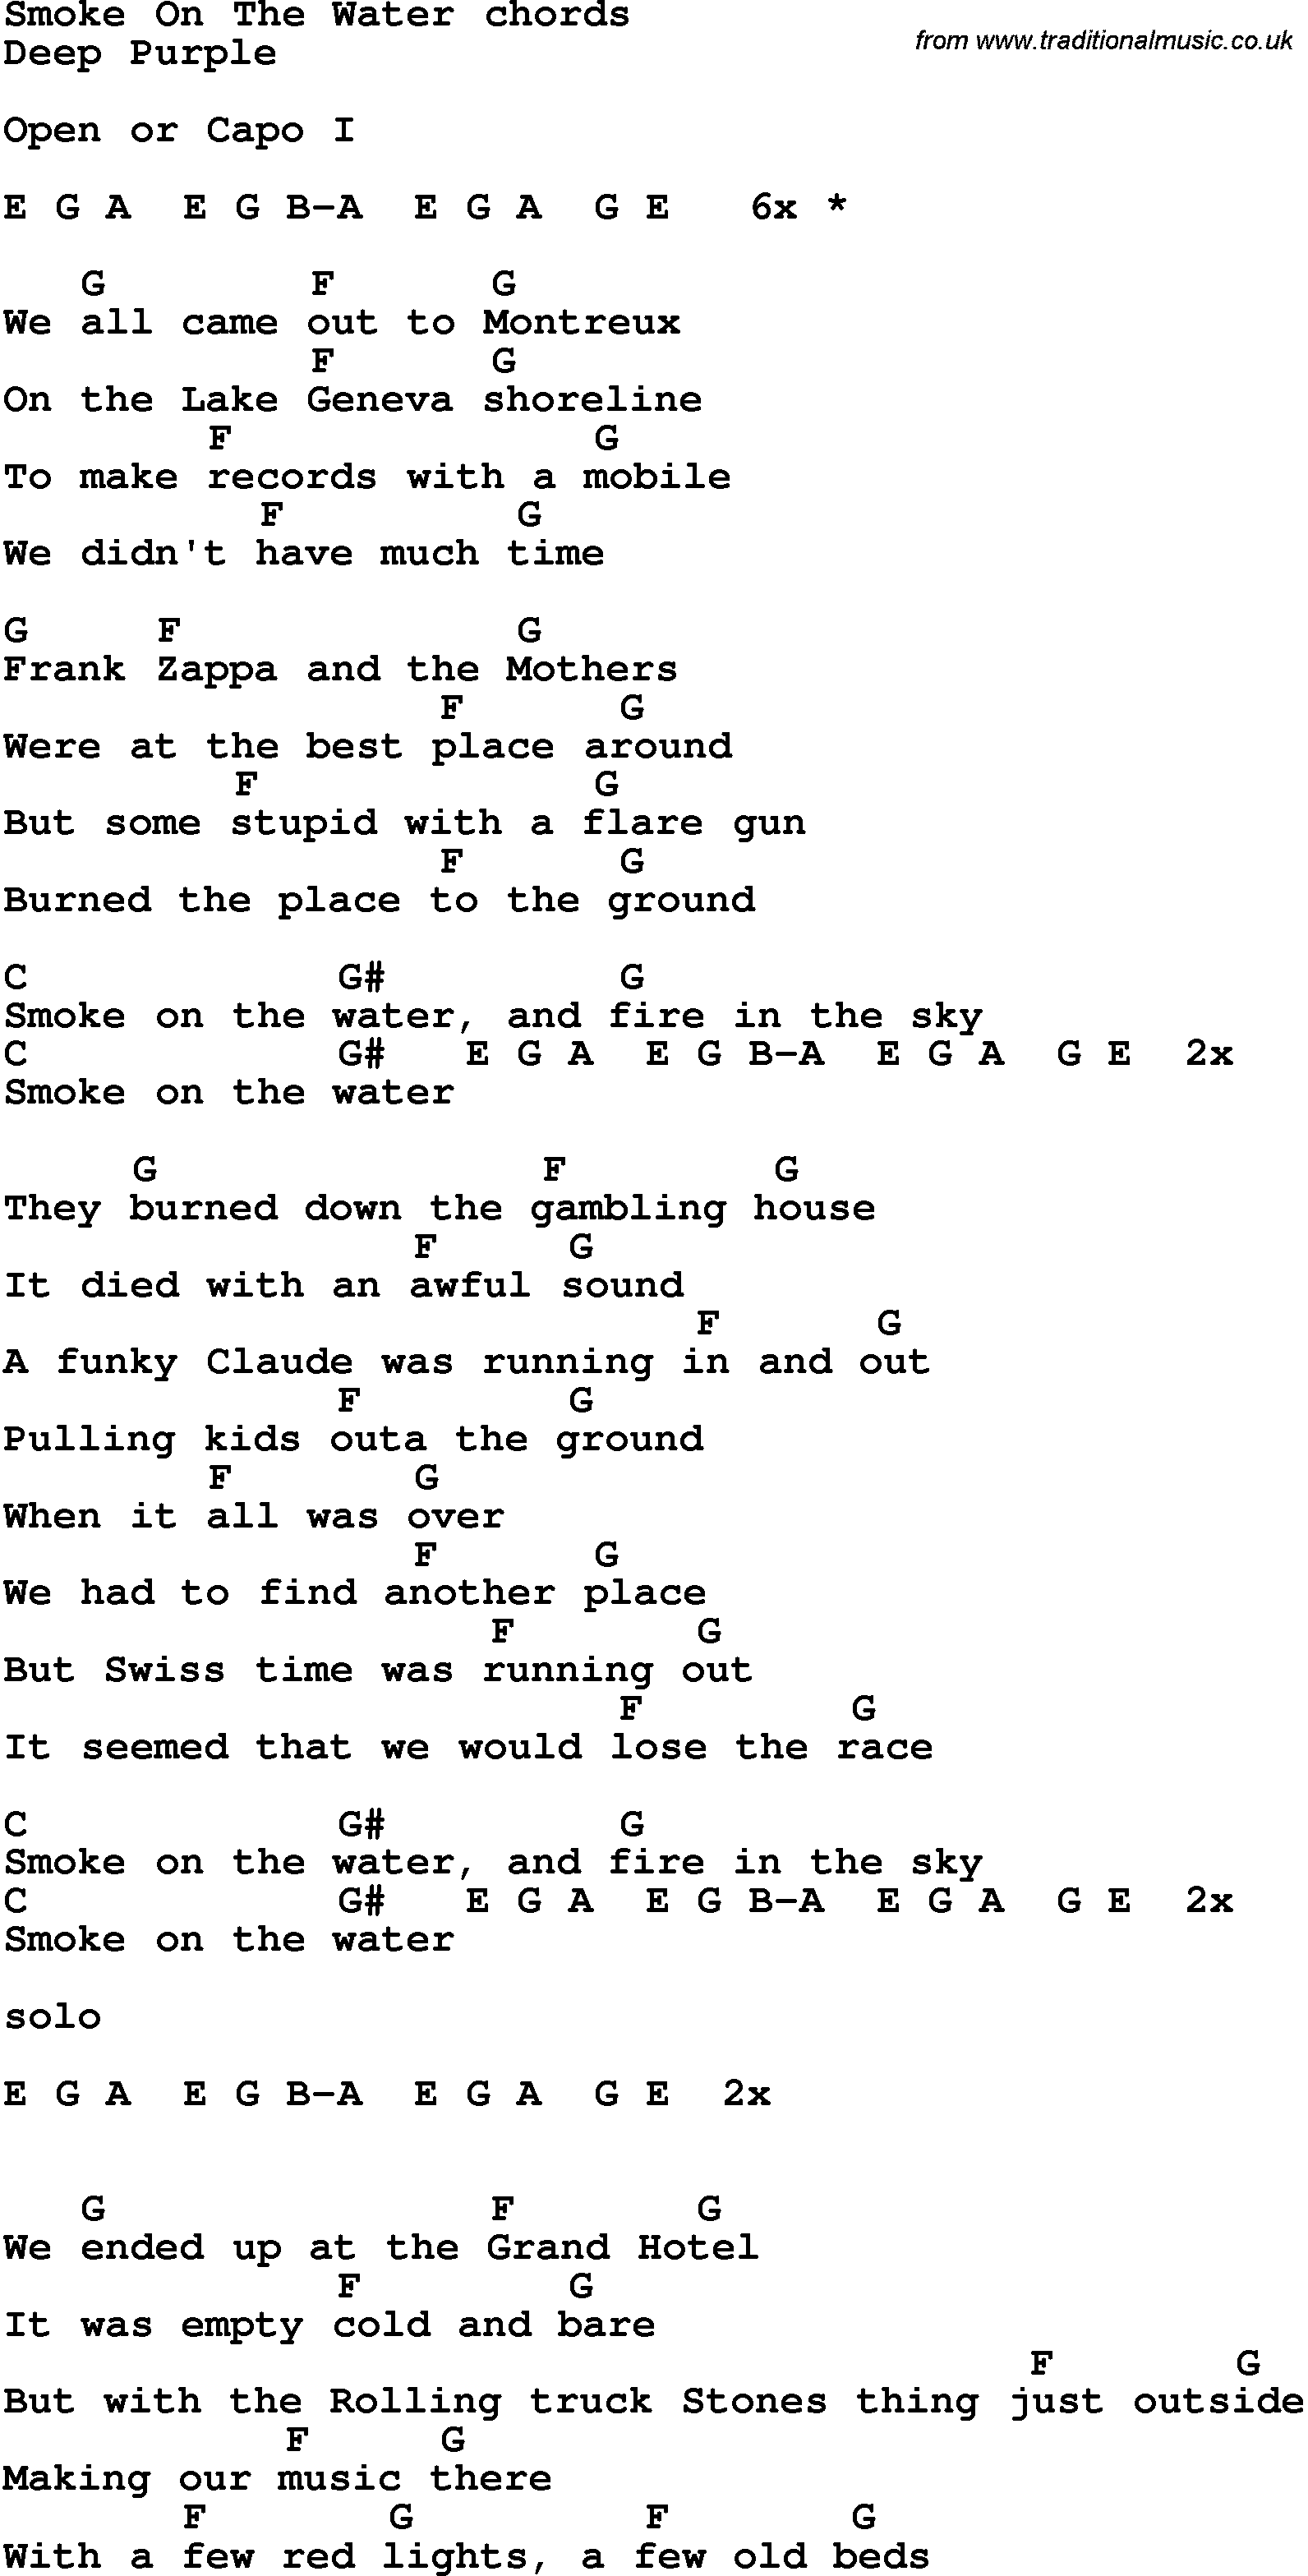 Song lyrics with guitar chords for Smoke On The Water